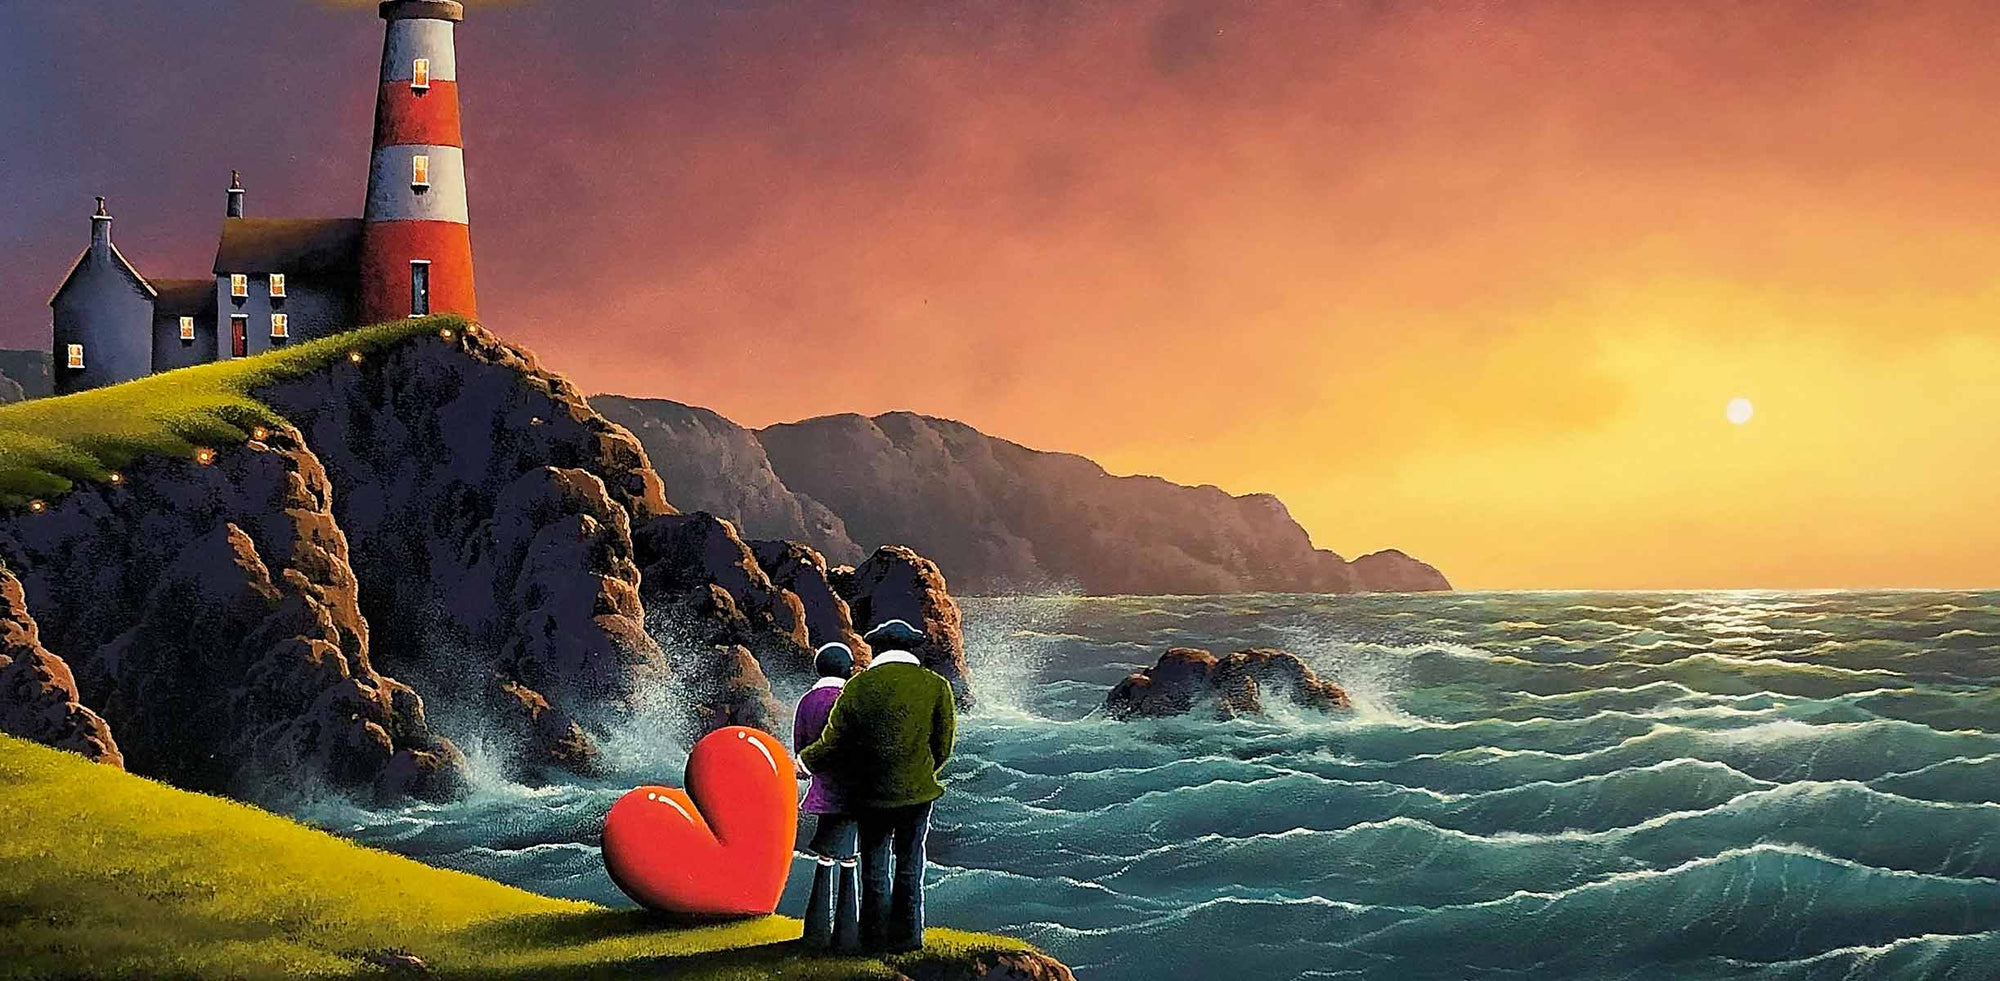 A Beacon of Hope - Edition David Renshaw